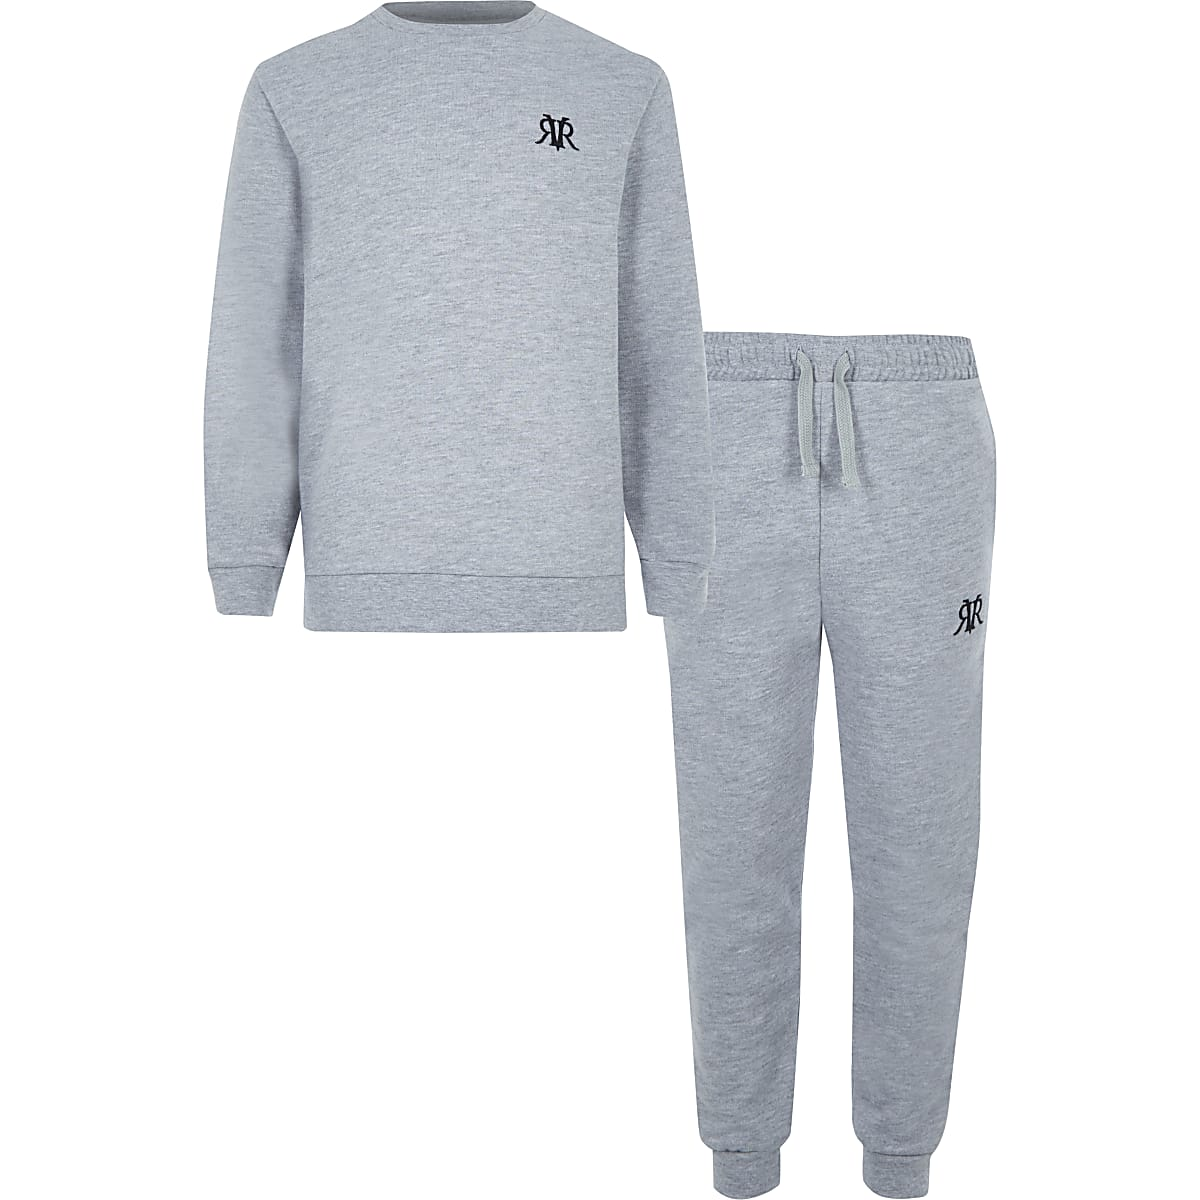 Boys grey RI sweatshirt outfit